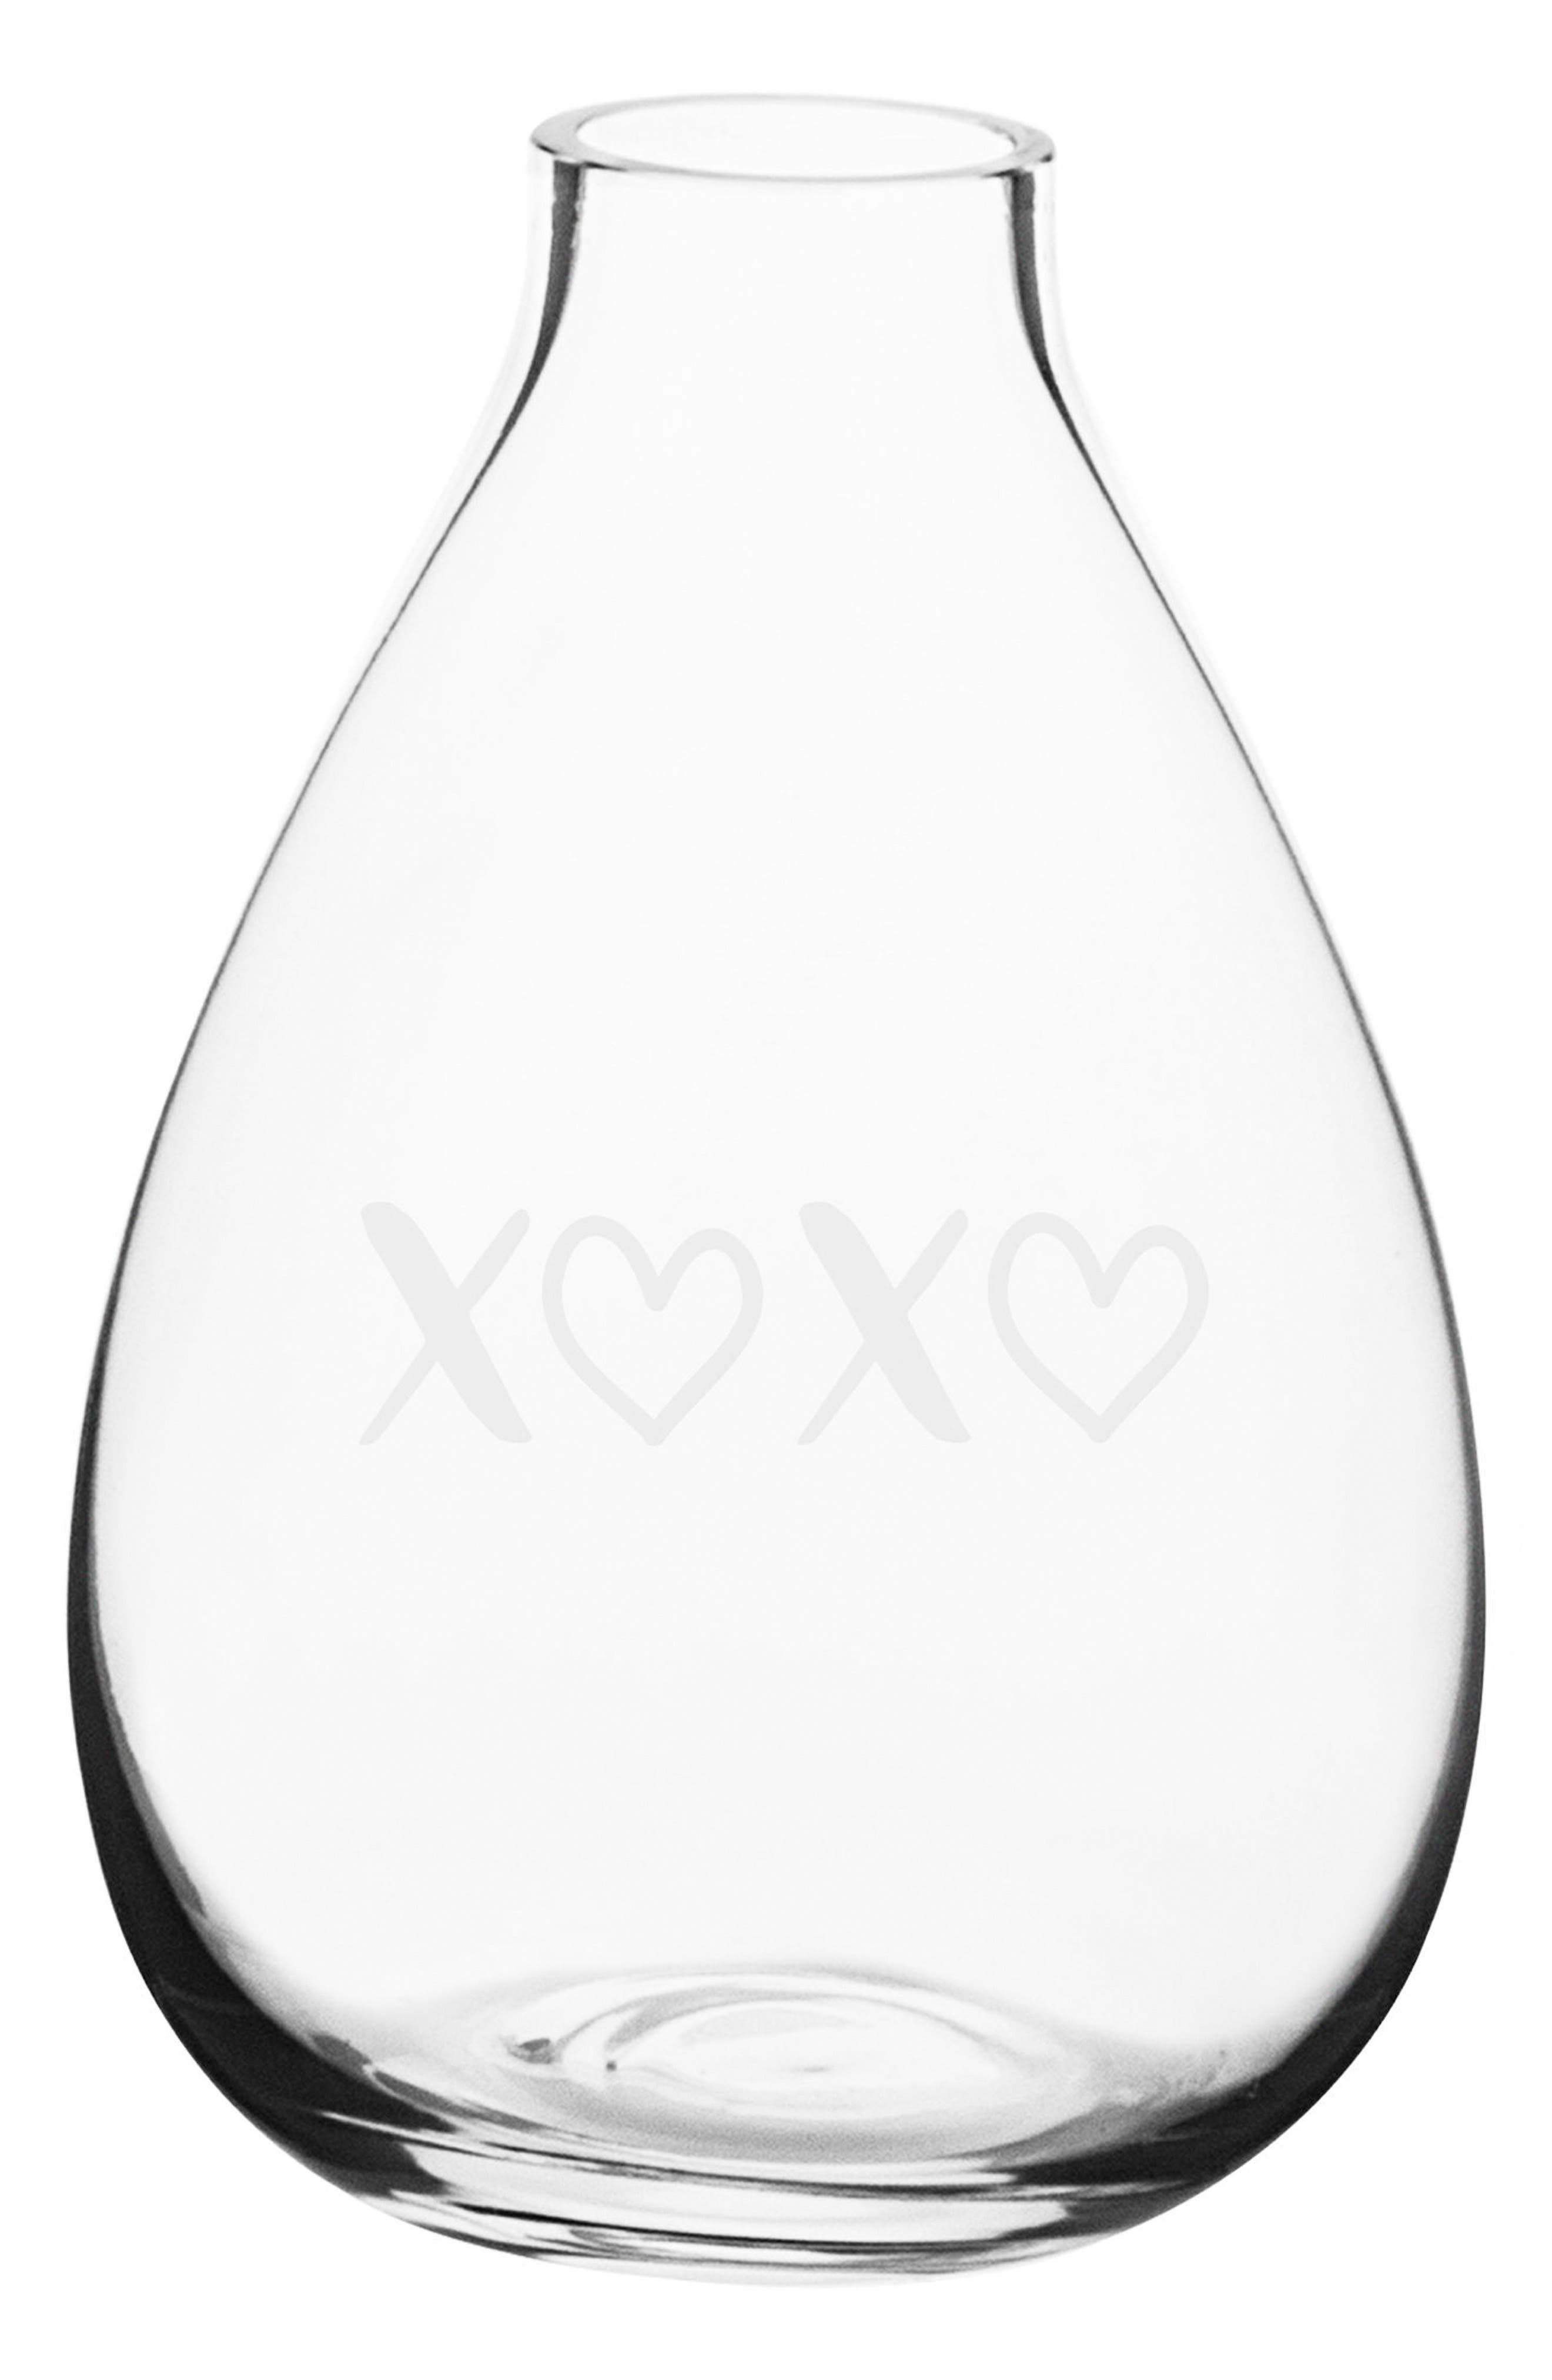 Main Image - Cathy's Concepts XOXO Glass Vase